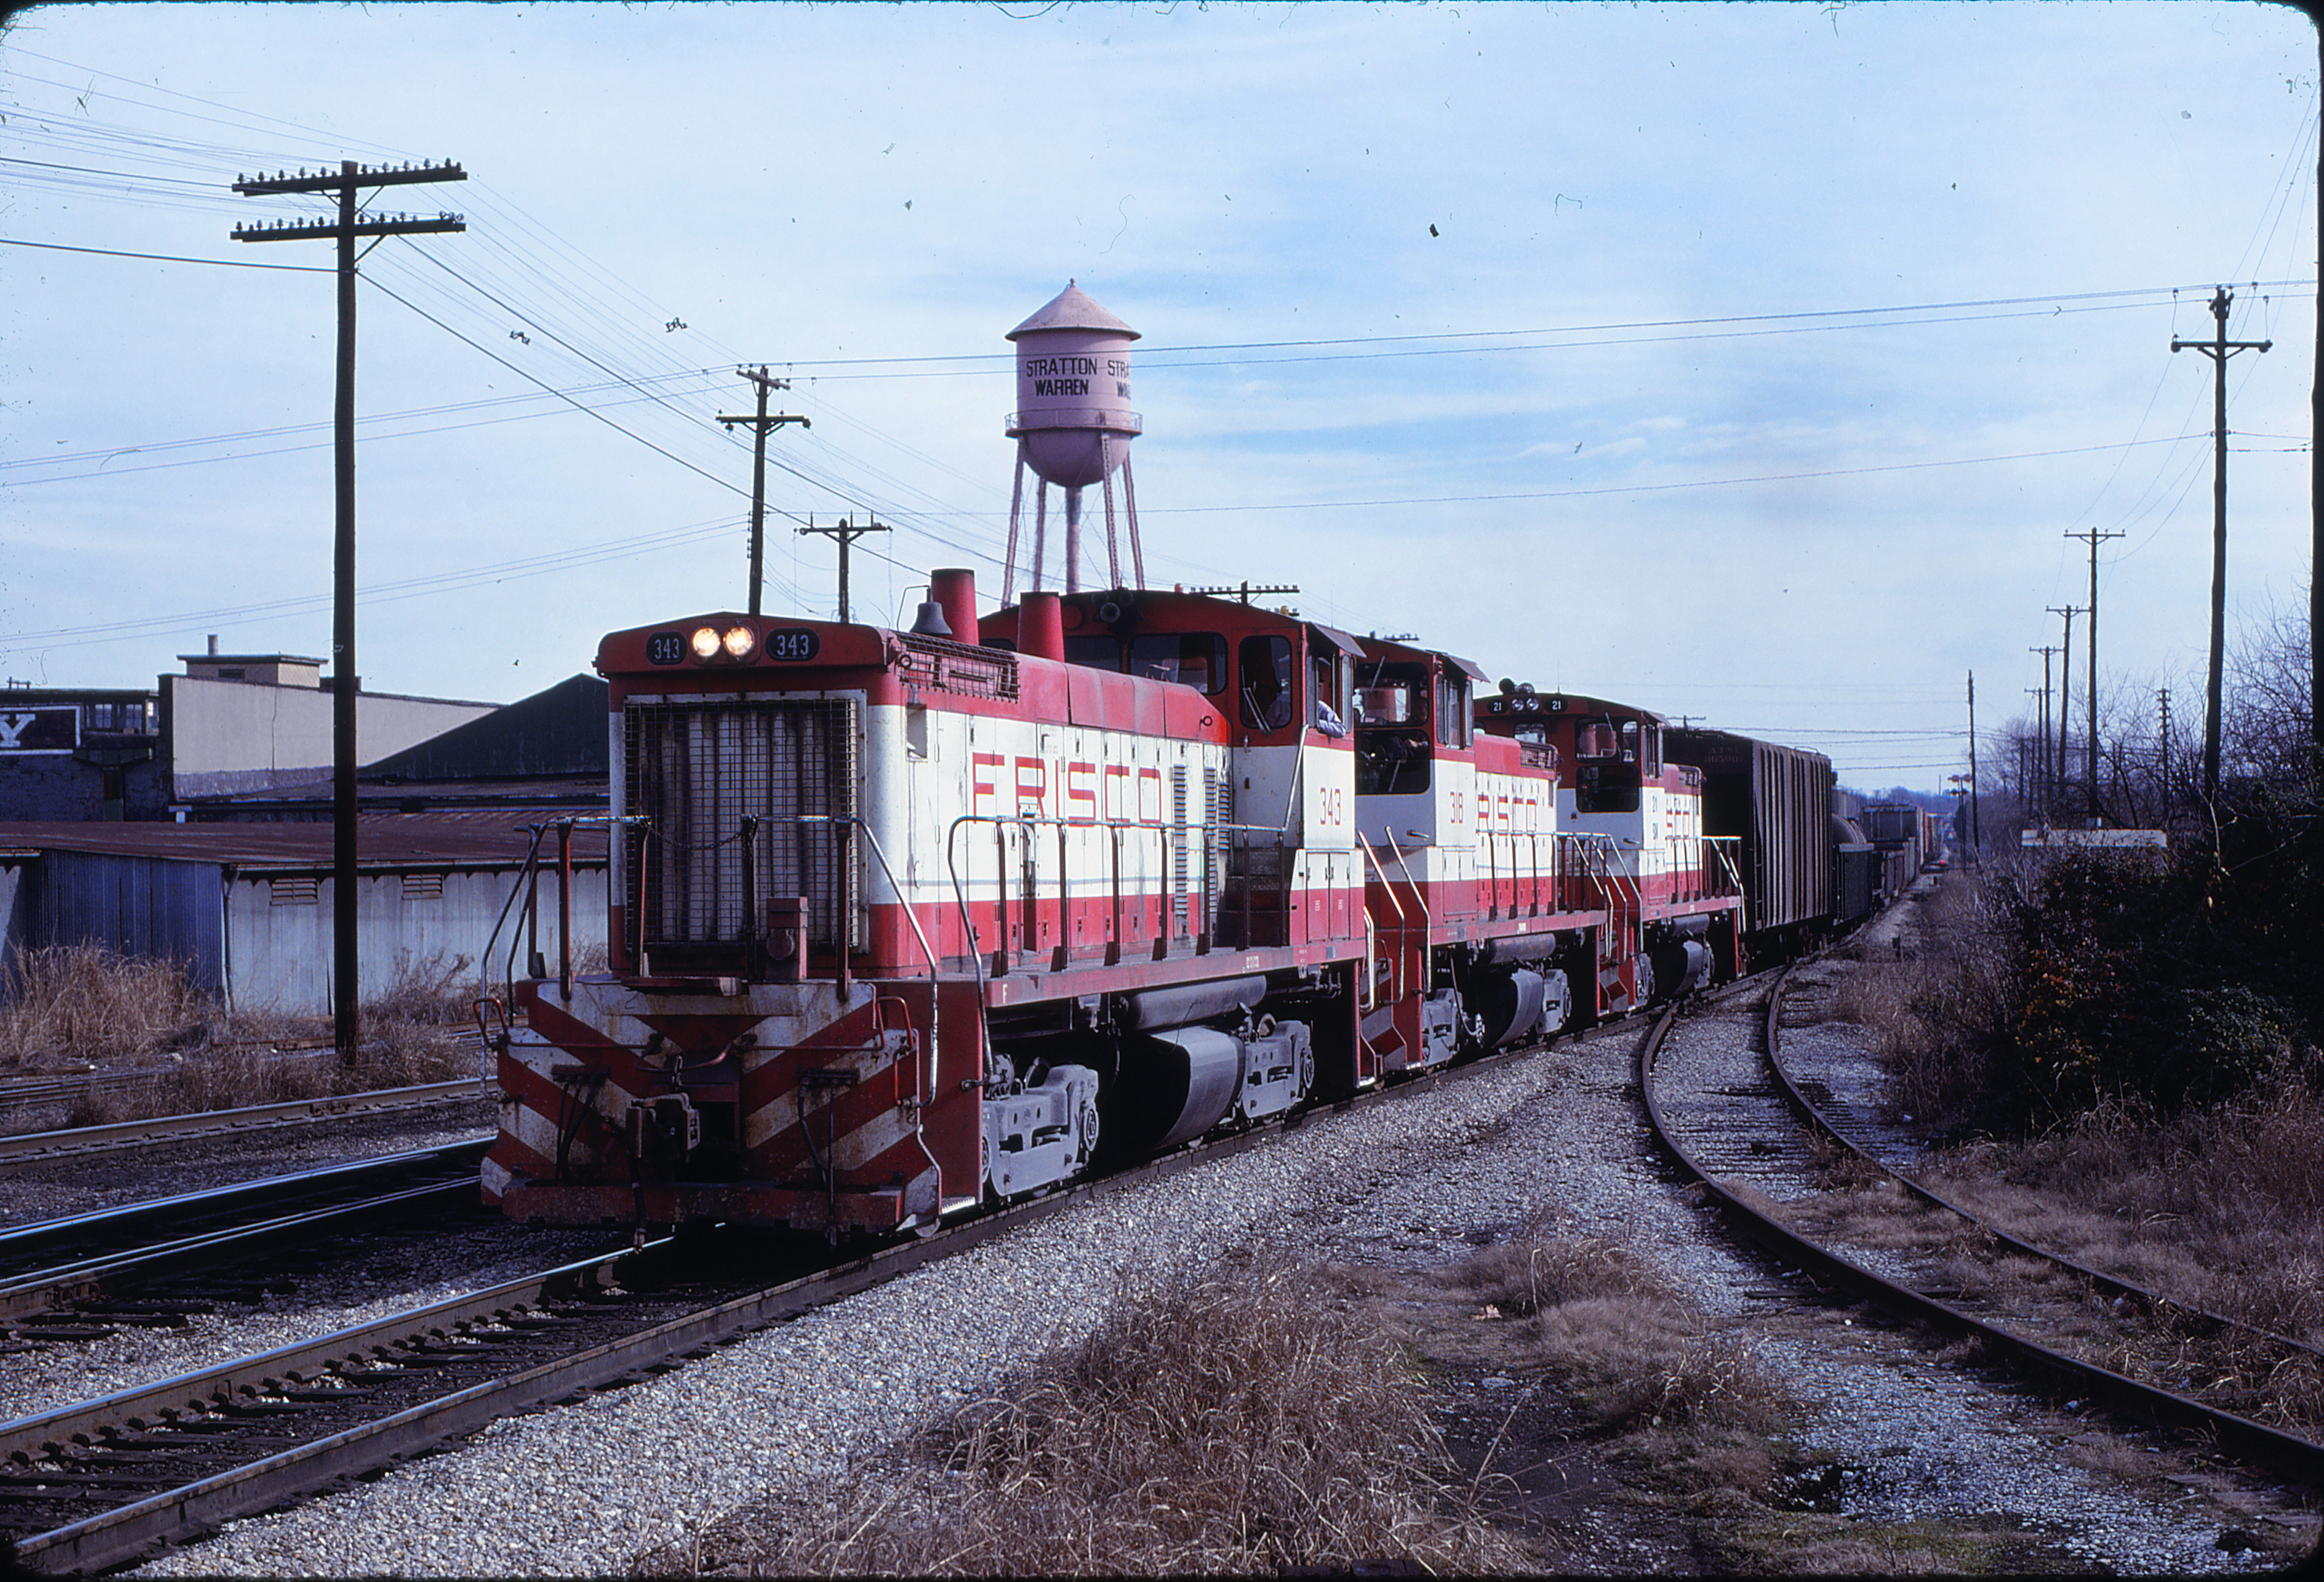 SW1500s 343 and 318 at Memphis, Tennessee in January 1981 (Lon Coone)